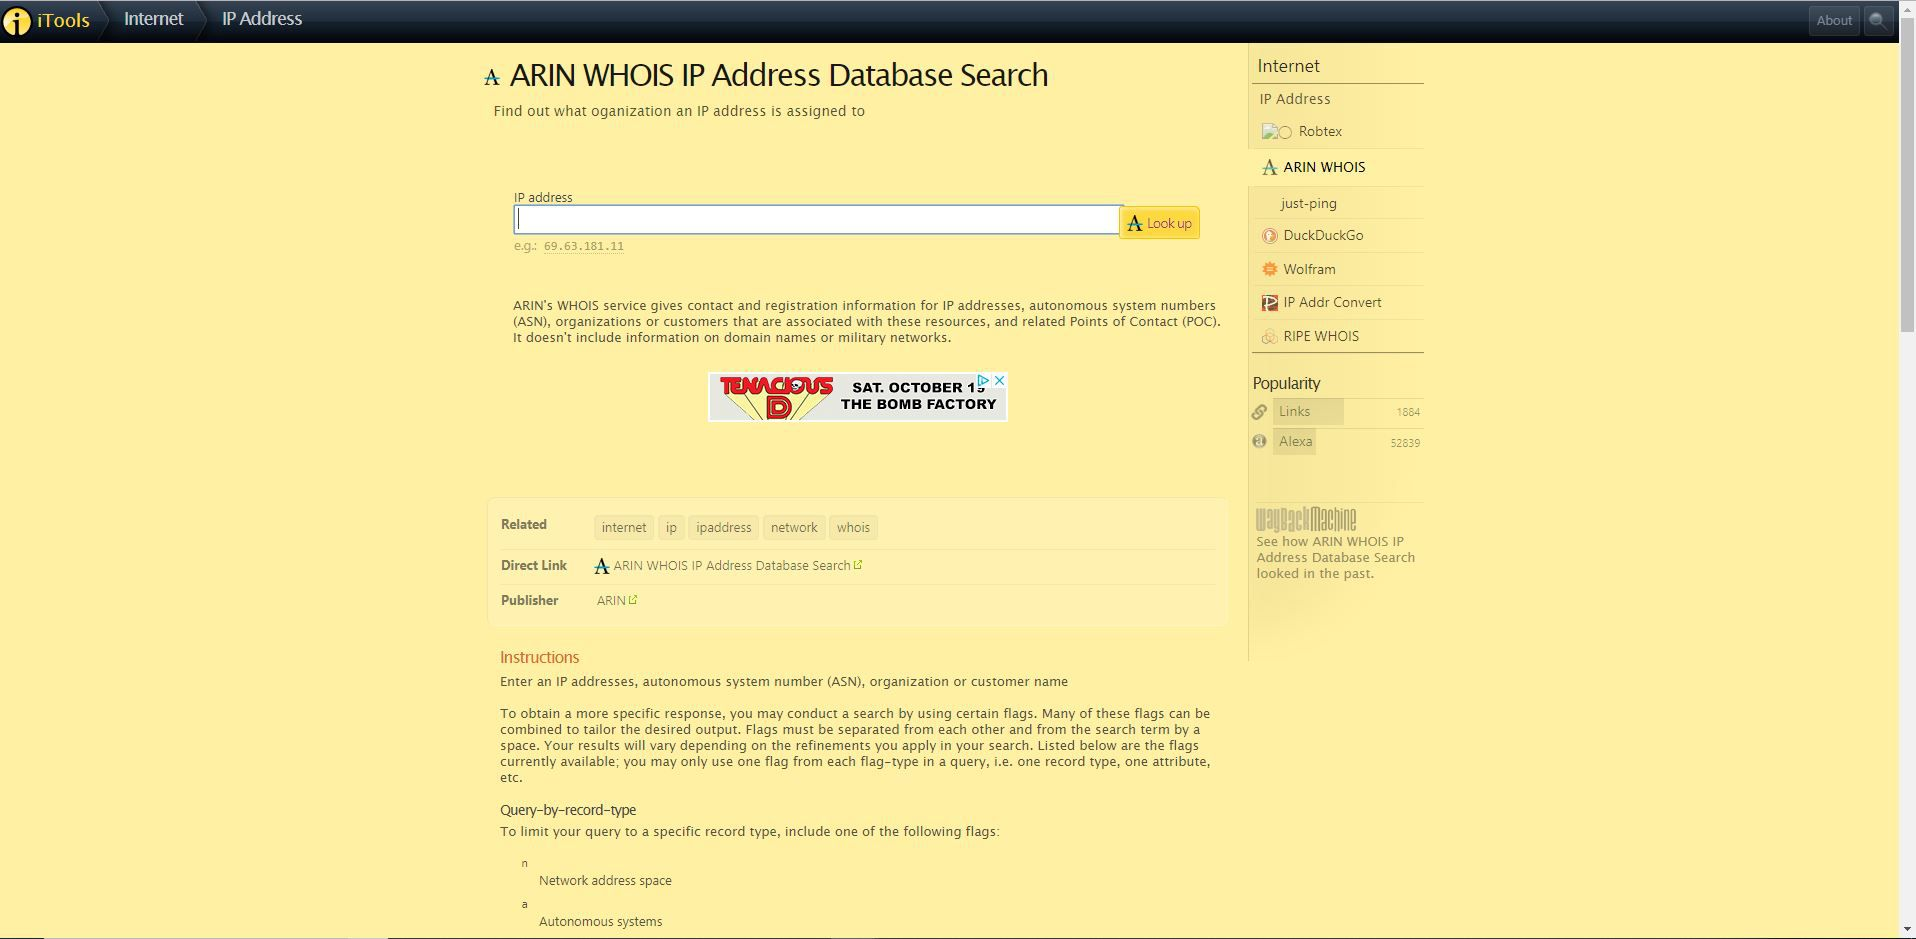 How to Look up an IP Address Owner